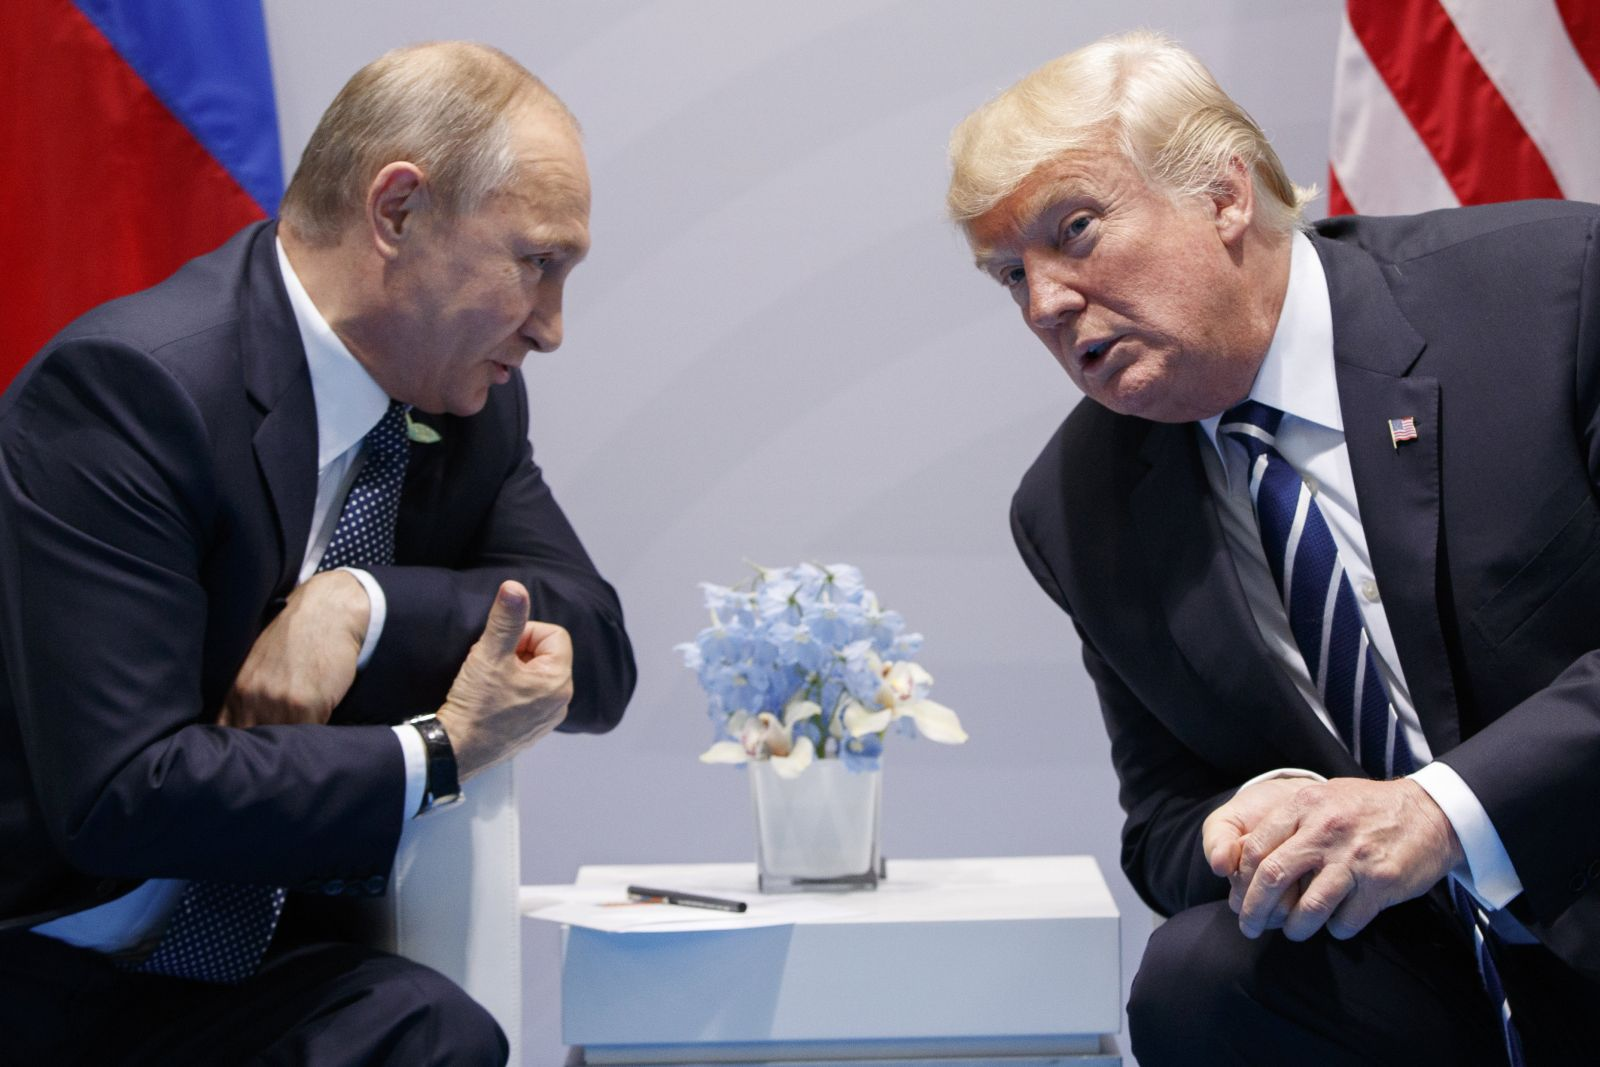 FILE - In this Friday, July 7, 2017, file photo U.S. President Donald Trump meets with Russian President Vladimir Putin at the G-20 Summit in Hamburg. The Kremlin and the White House have announced Thursday, June 28, 2018, that a summit between Russian President Vladimir Putin and U.S. President Donald Trump will take place in Helsinki, Finland, on July 16. (AP Photo/Evan Vucci, File)